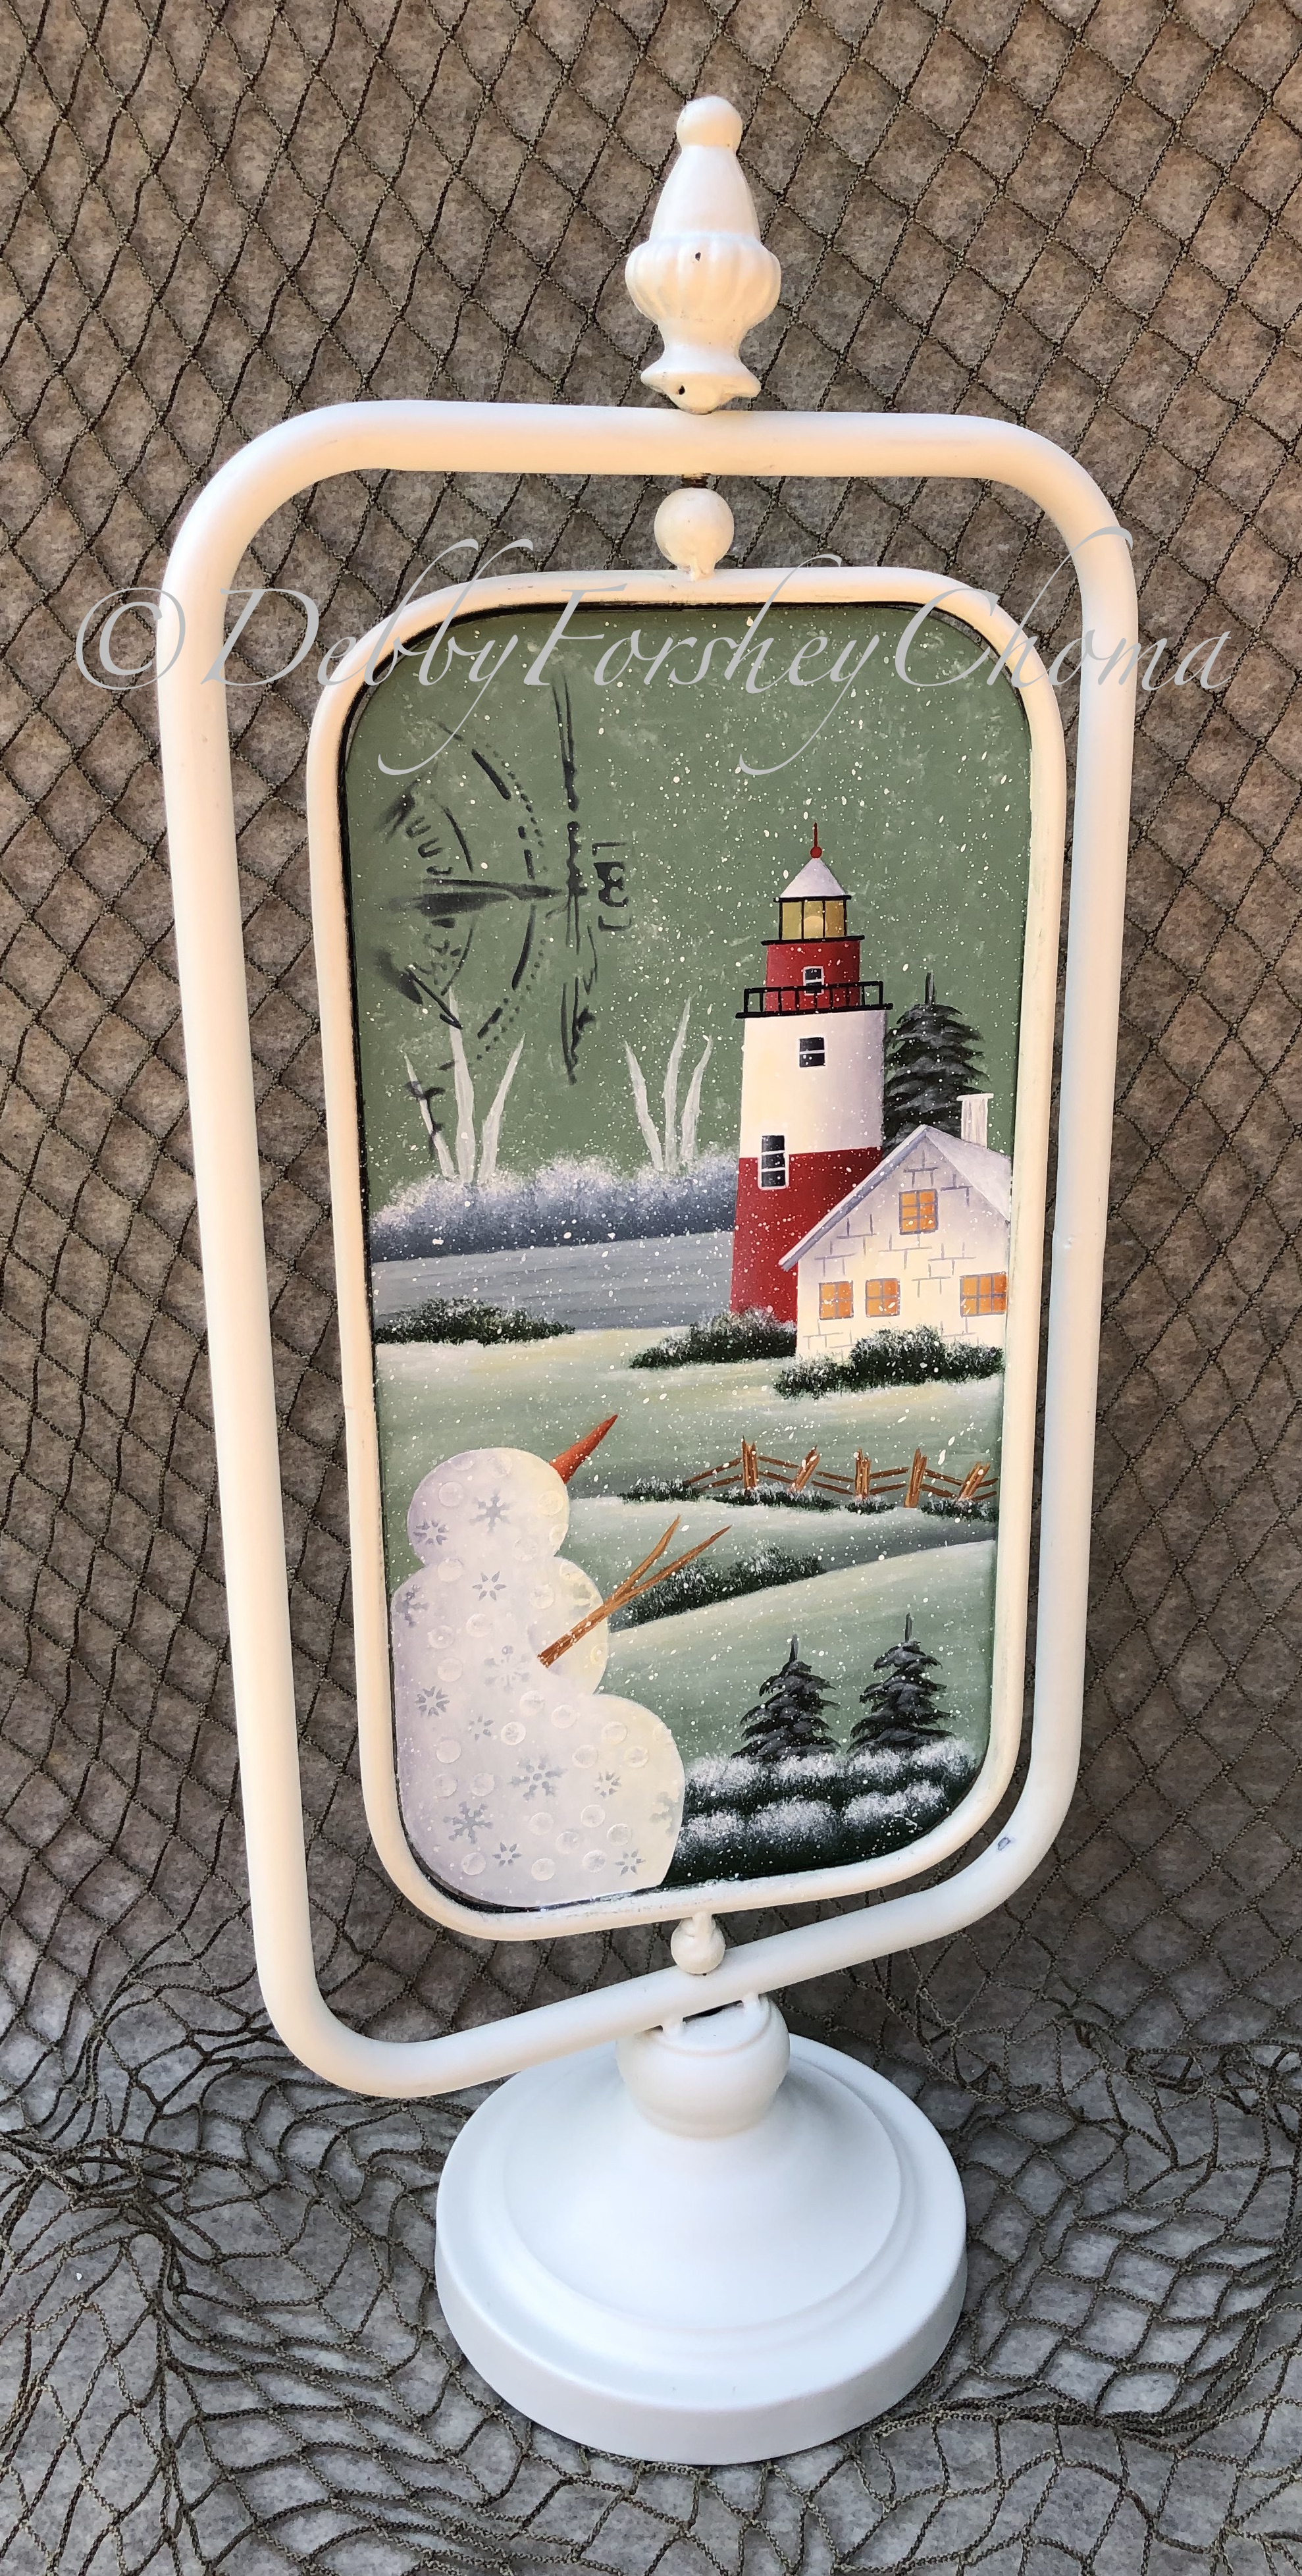 East Point Light Tower - E-Packet - Debby Forshey-Choma